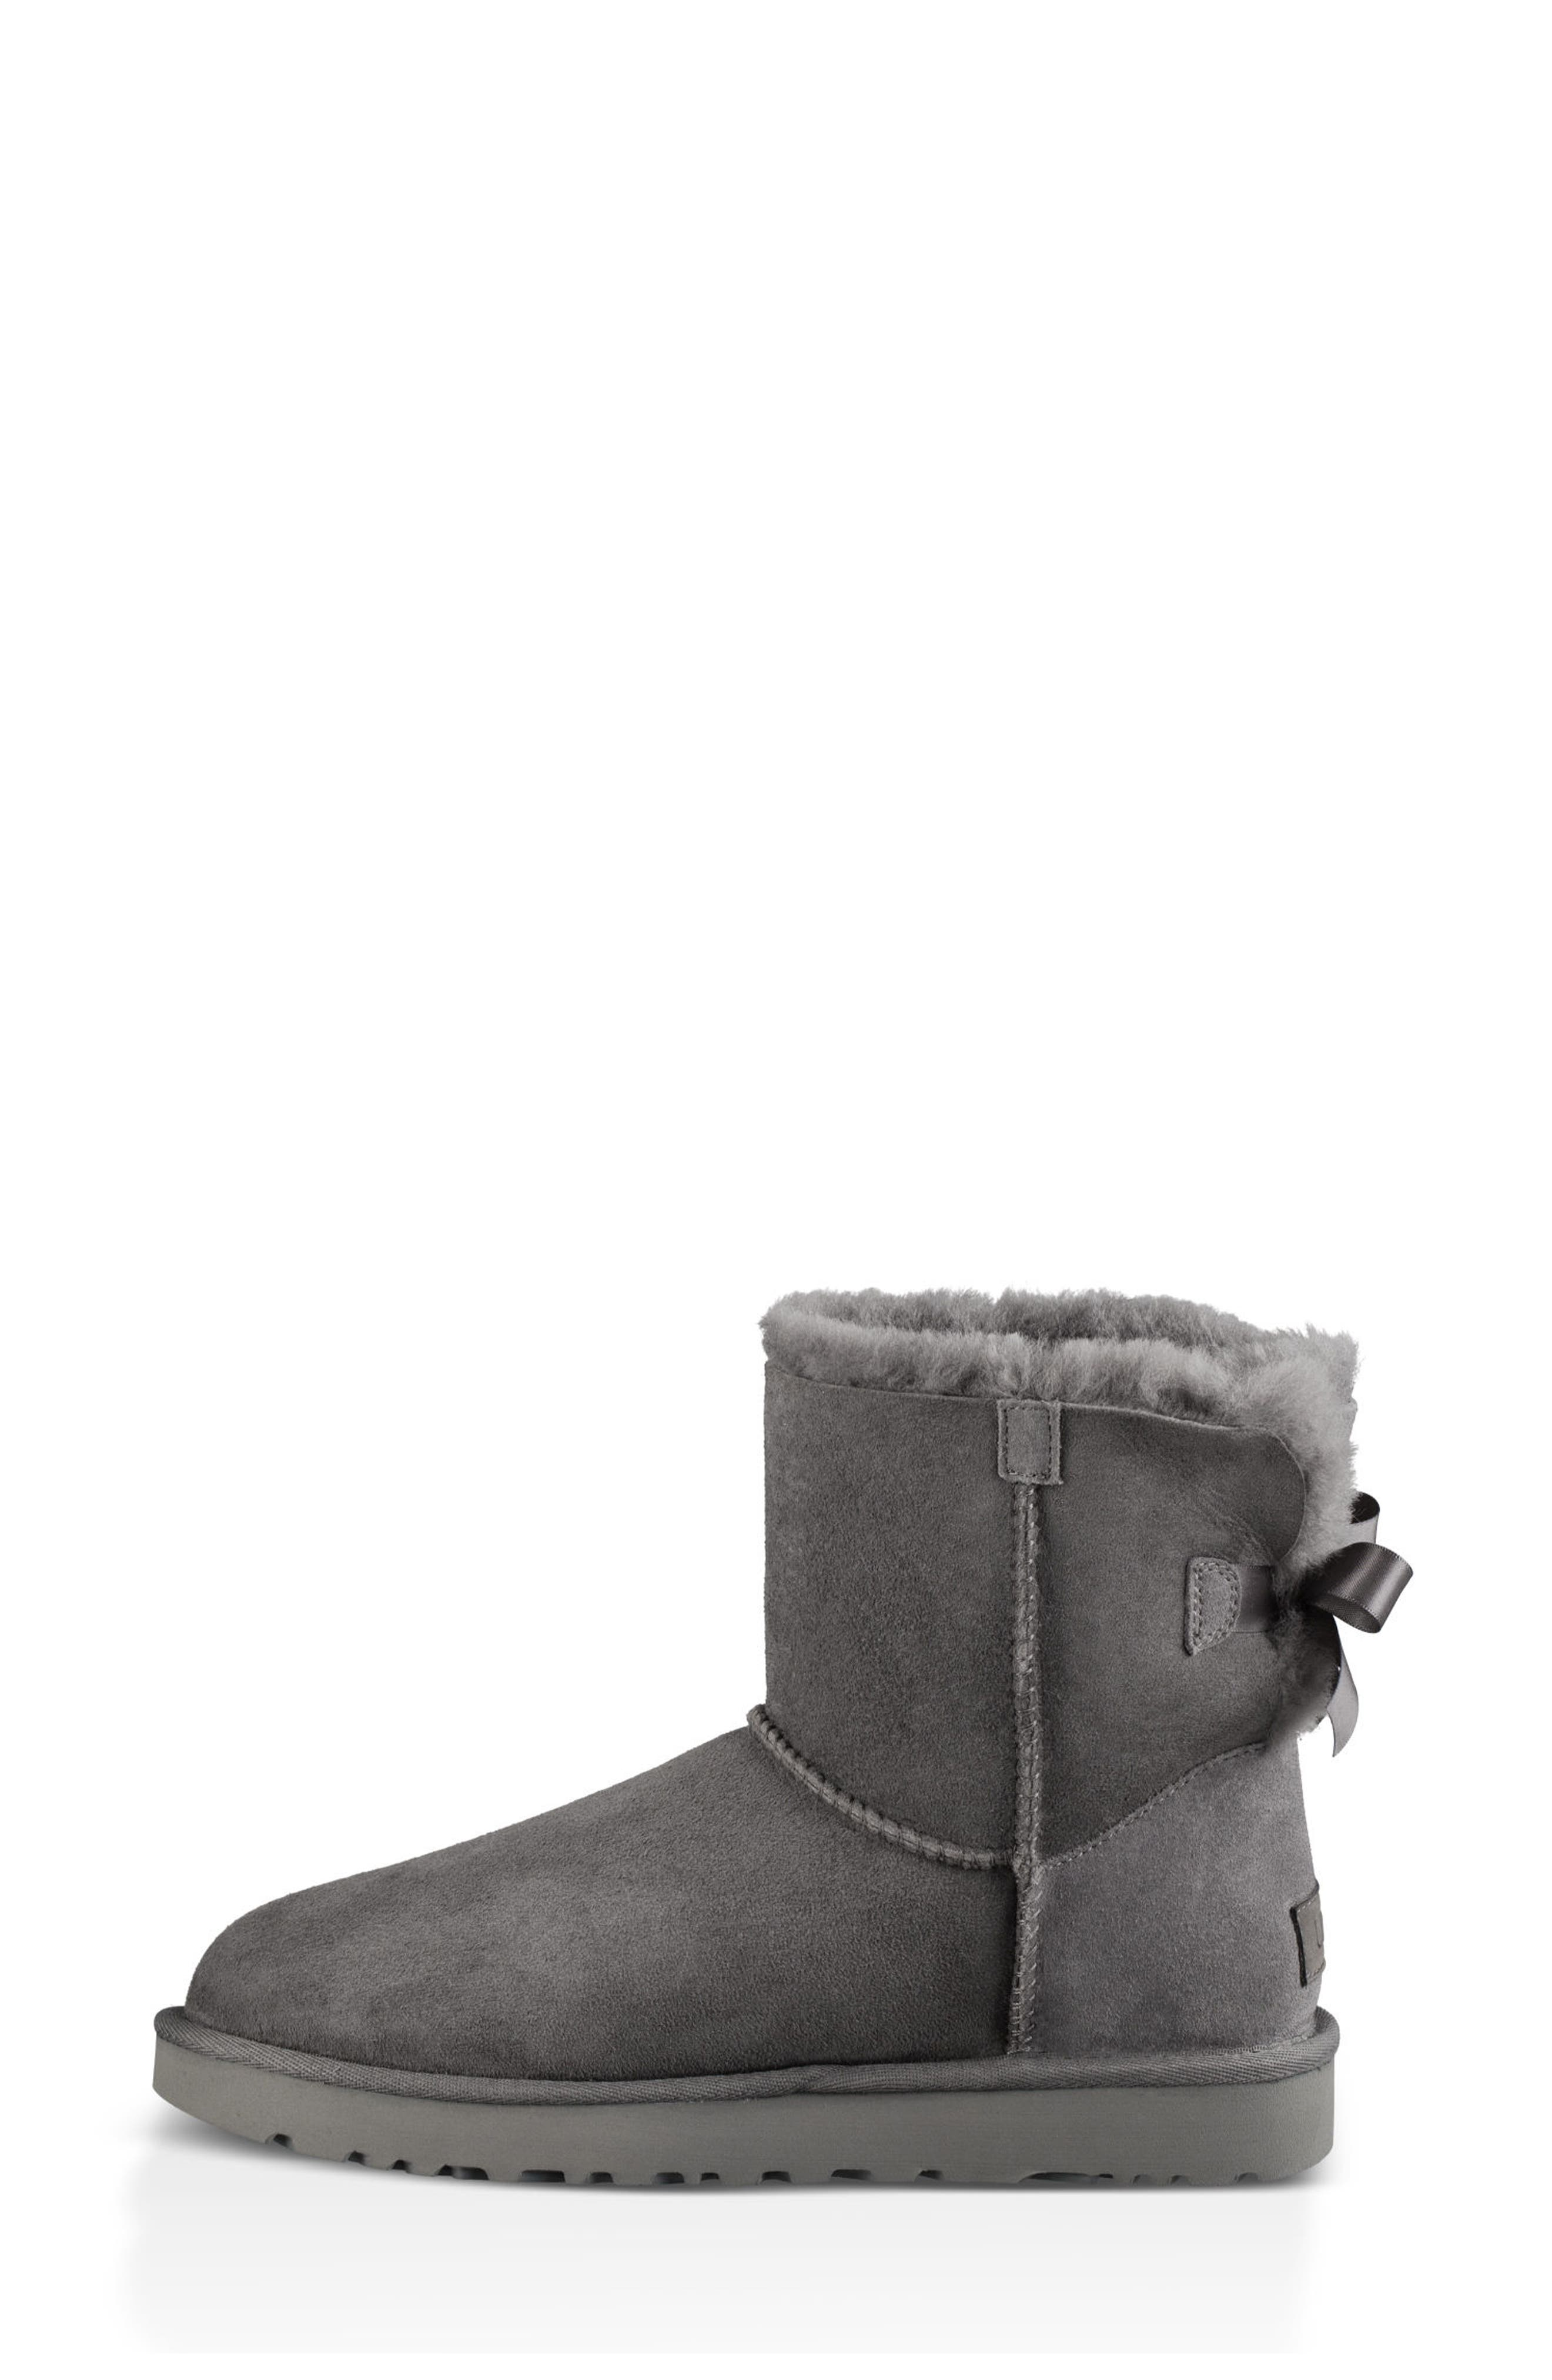 UGG<SUP>®</SUP>, Mini Bailey Bow II Genuine Shearling Bootie, Alternate thumbnail 6, color, GREY SUEDE